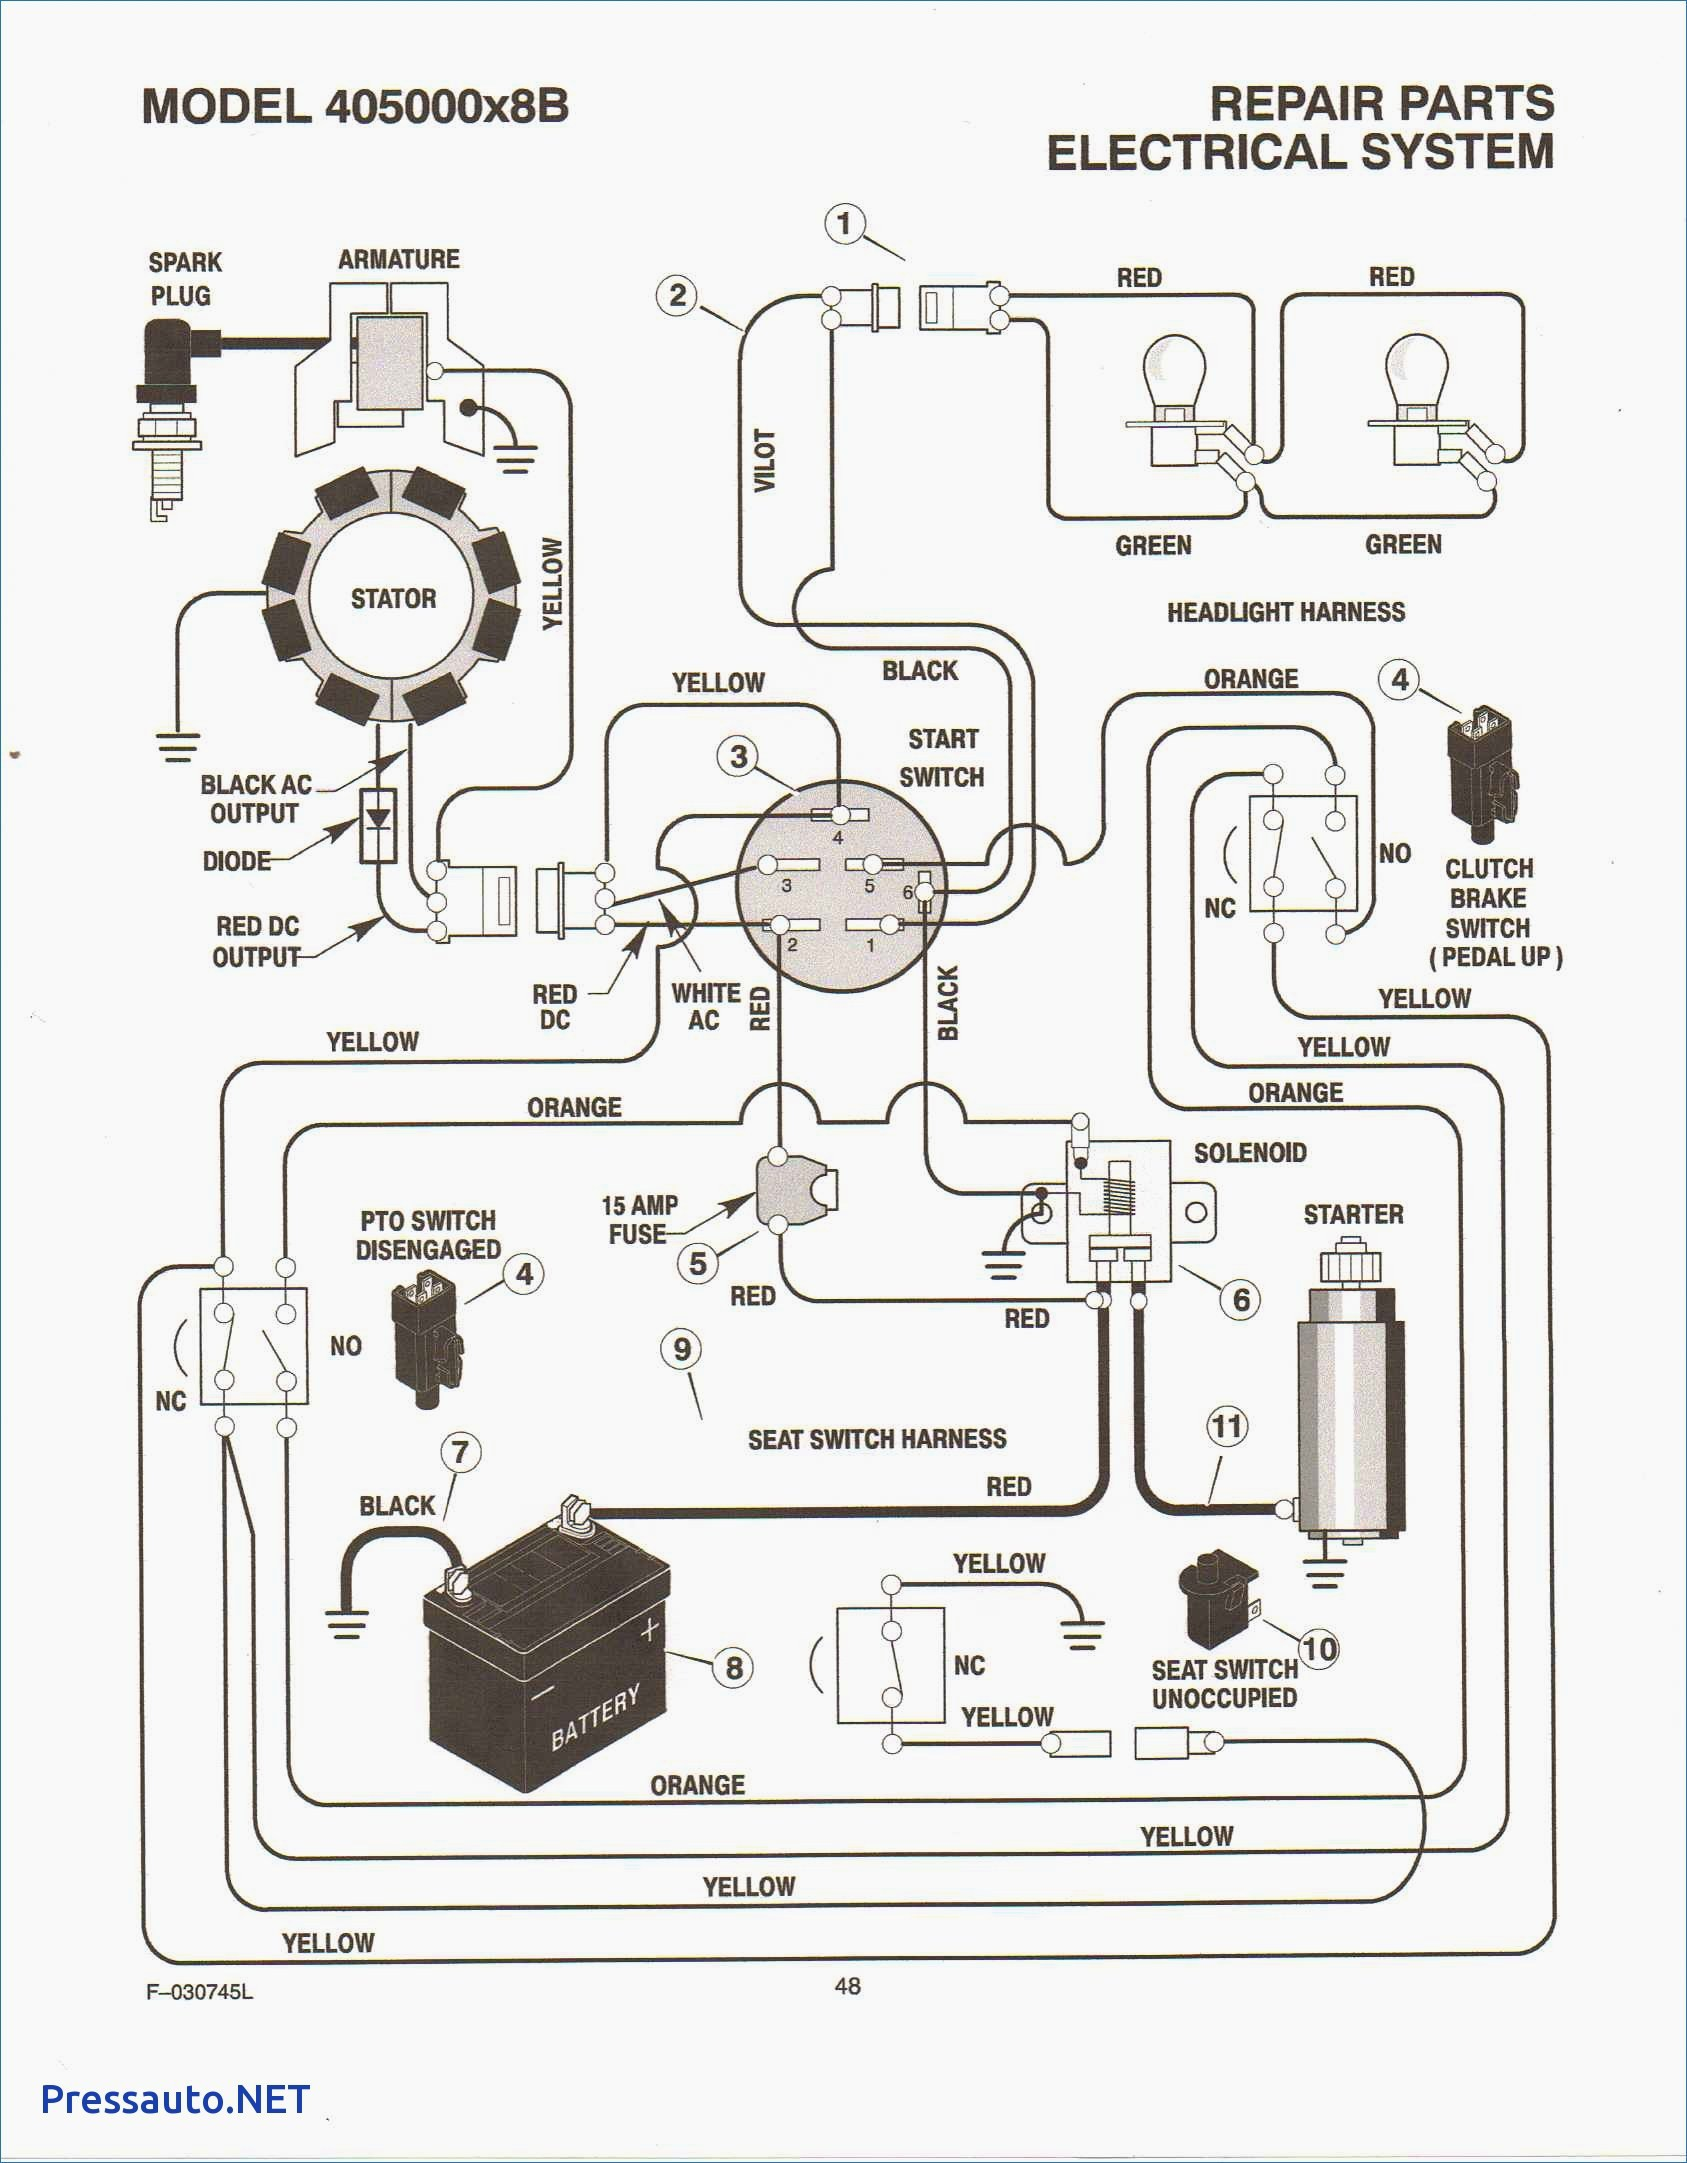 11 Hp Briggs and Stratton Engine Diagram Briggs and Stratton Wiring Diagram  5 Hp Copy Wonderful Magnificent